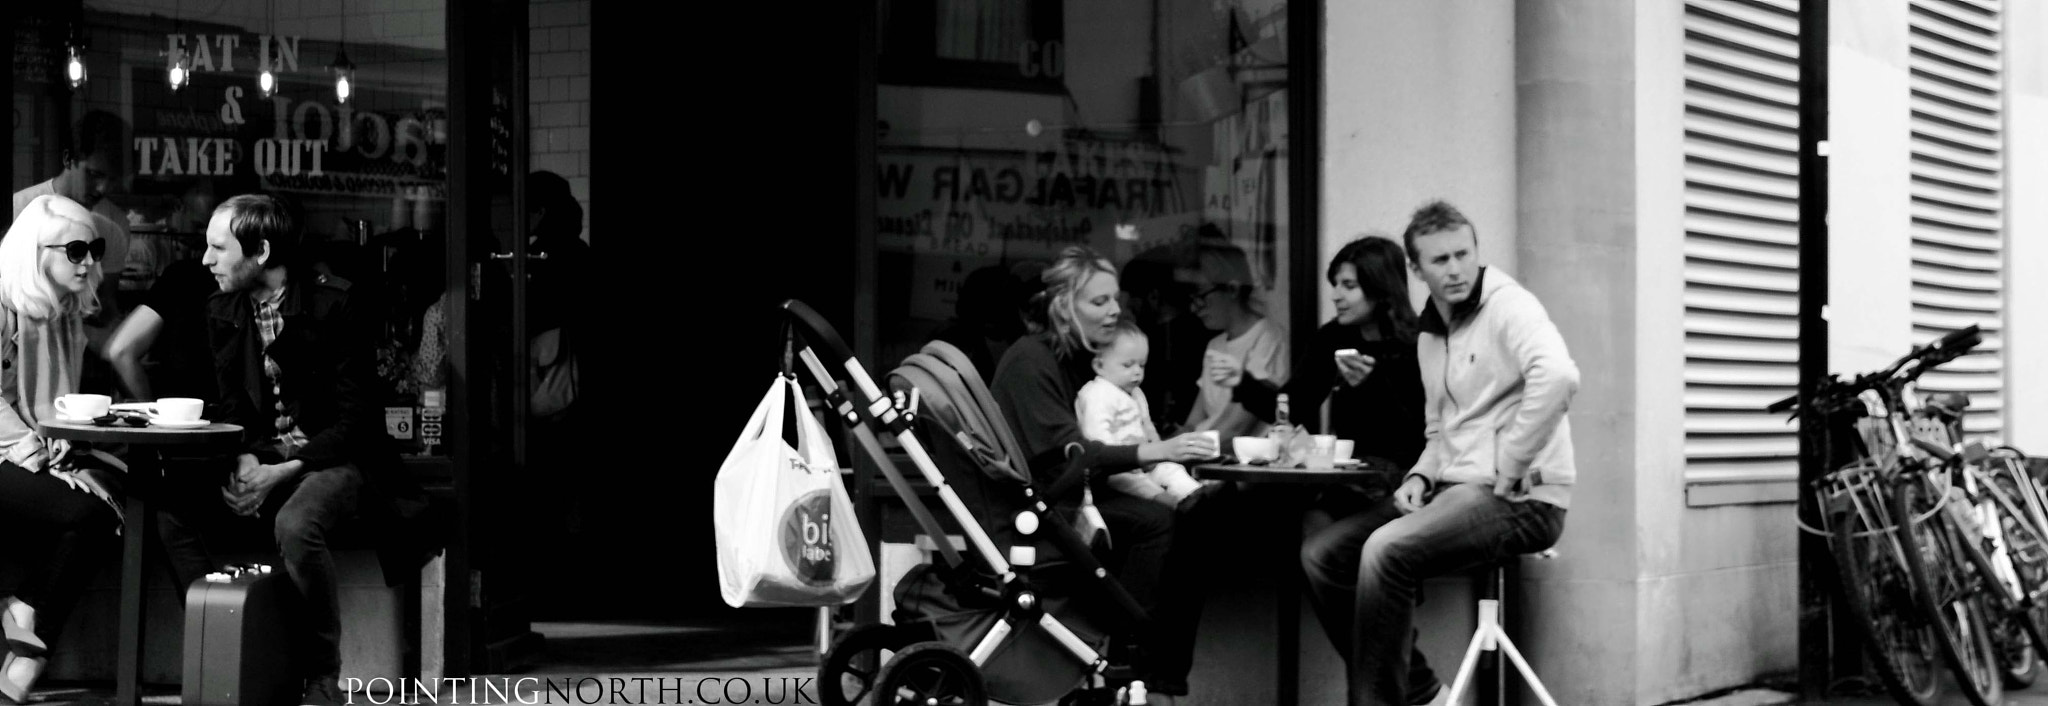 Photograph Cafe by David J Allen  on 500px